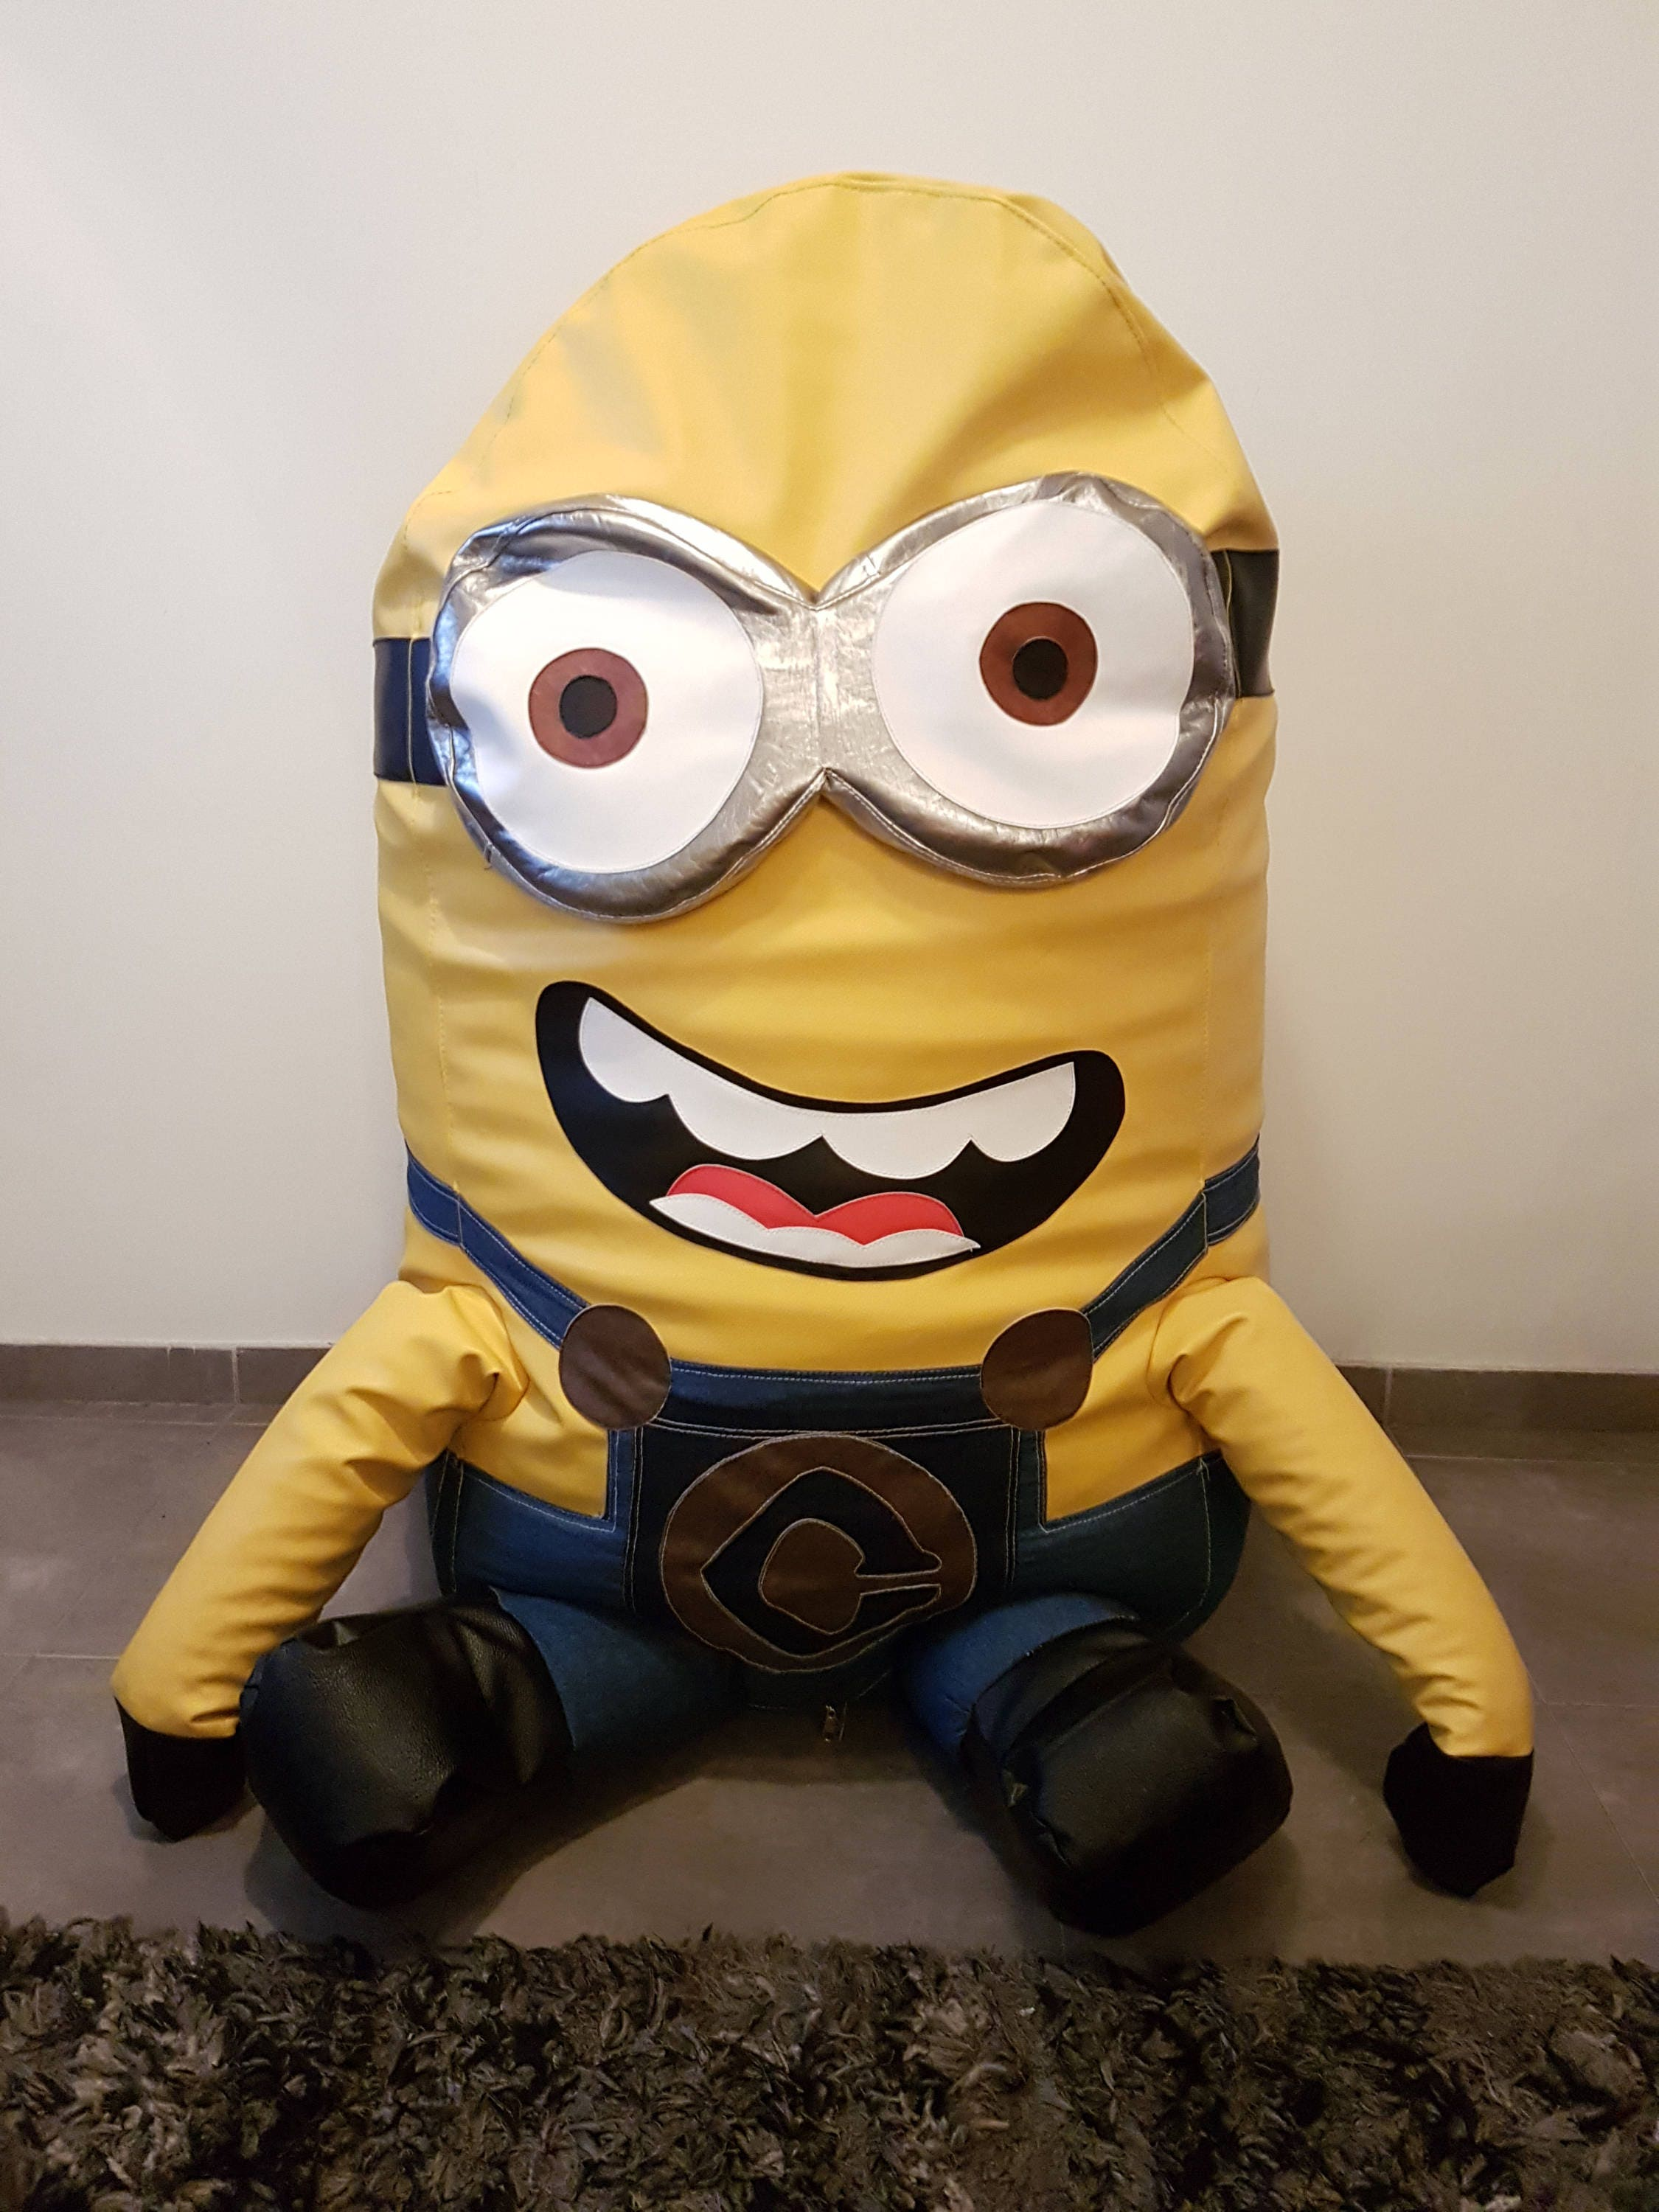 Large Minion Bean Bag Chair For Minions Fan Handcrafted